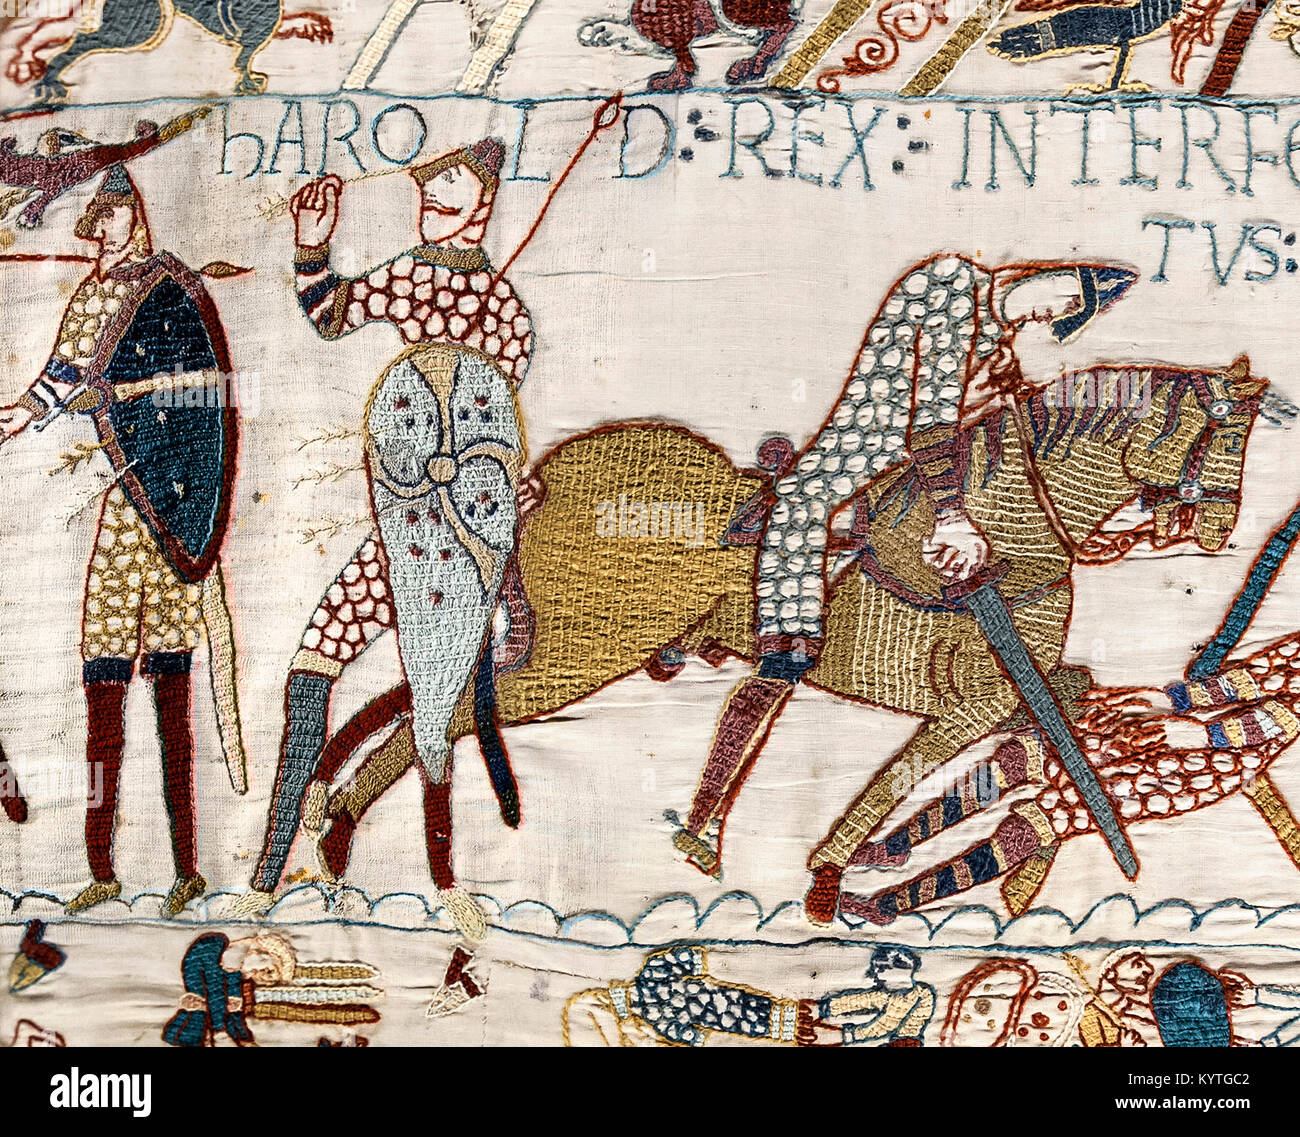 Detail from the Bayeux Tapestry showing the Death of King Harold at the Battle of Hastings in 1066. - Stock Image